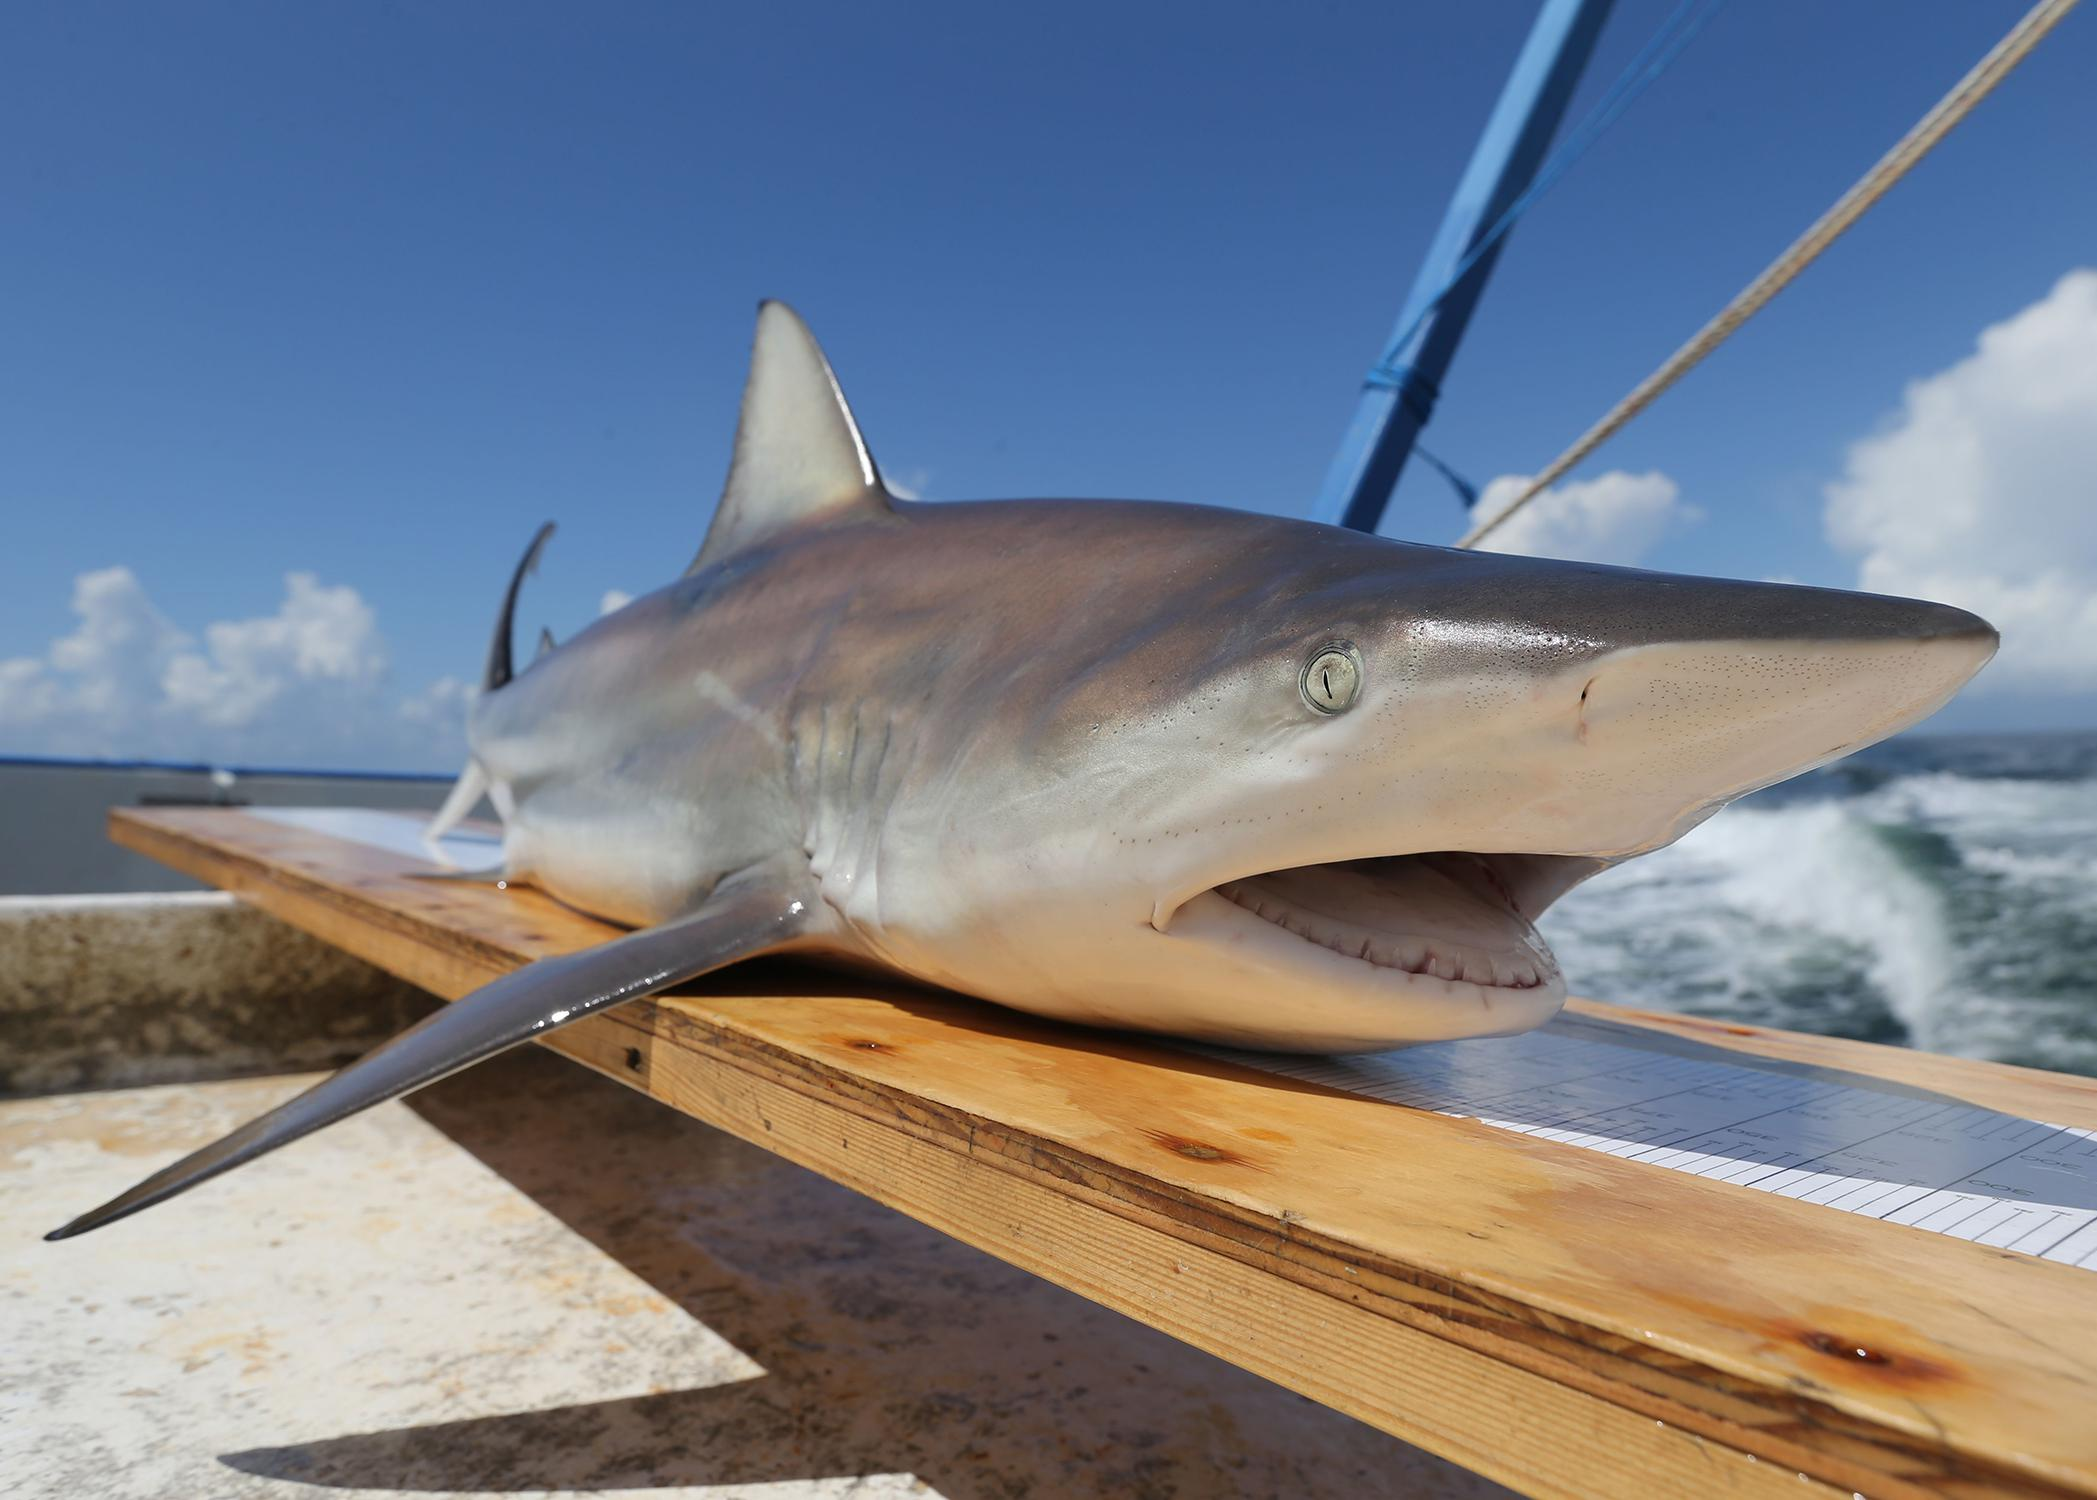 A gray shark with a white undercarriage and face sits atop a board on a boat.